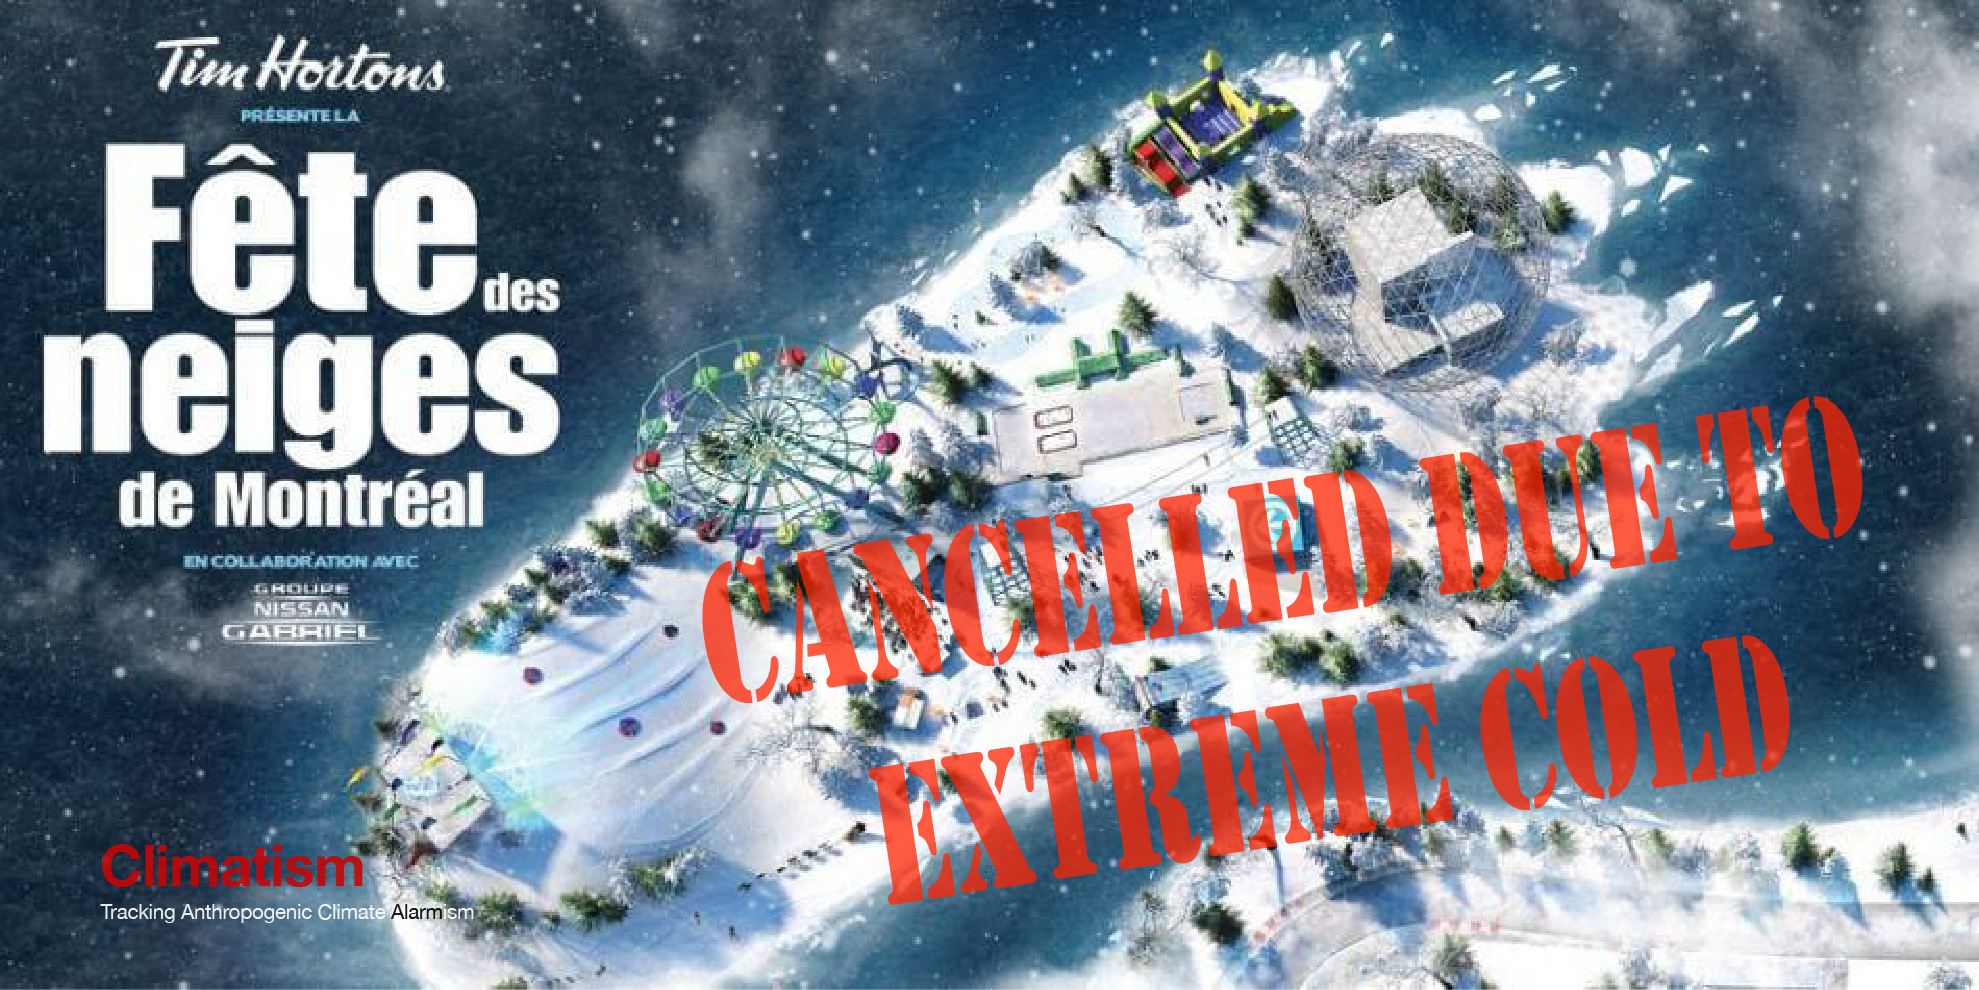 fete des neiges - cancelled - extreme cold - climatism